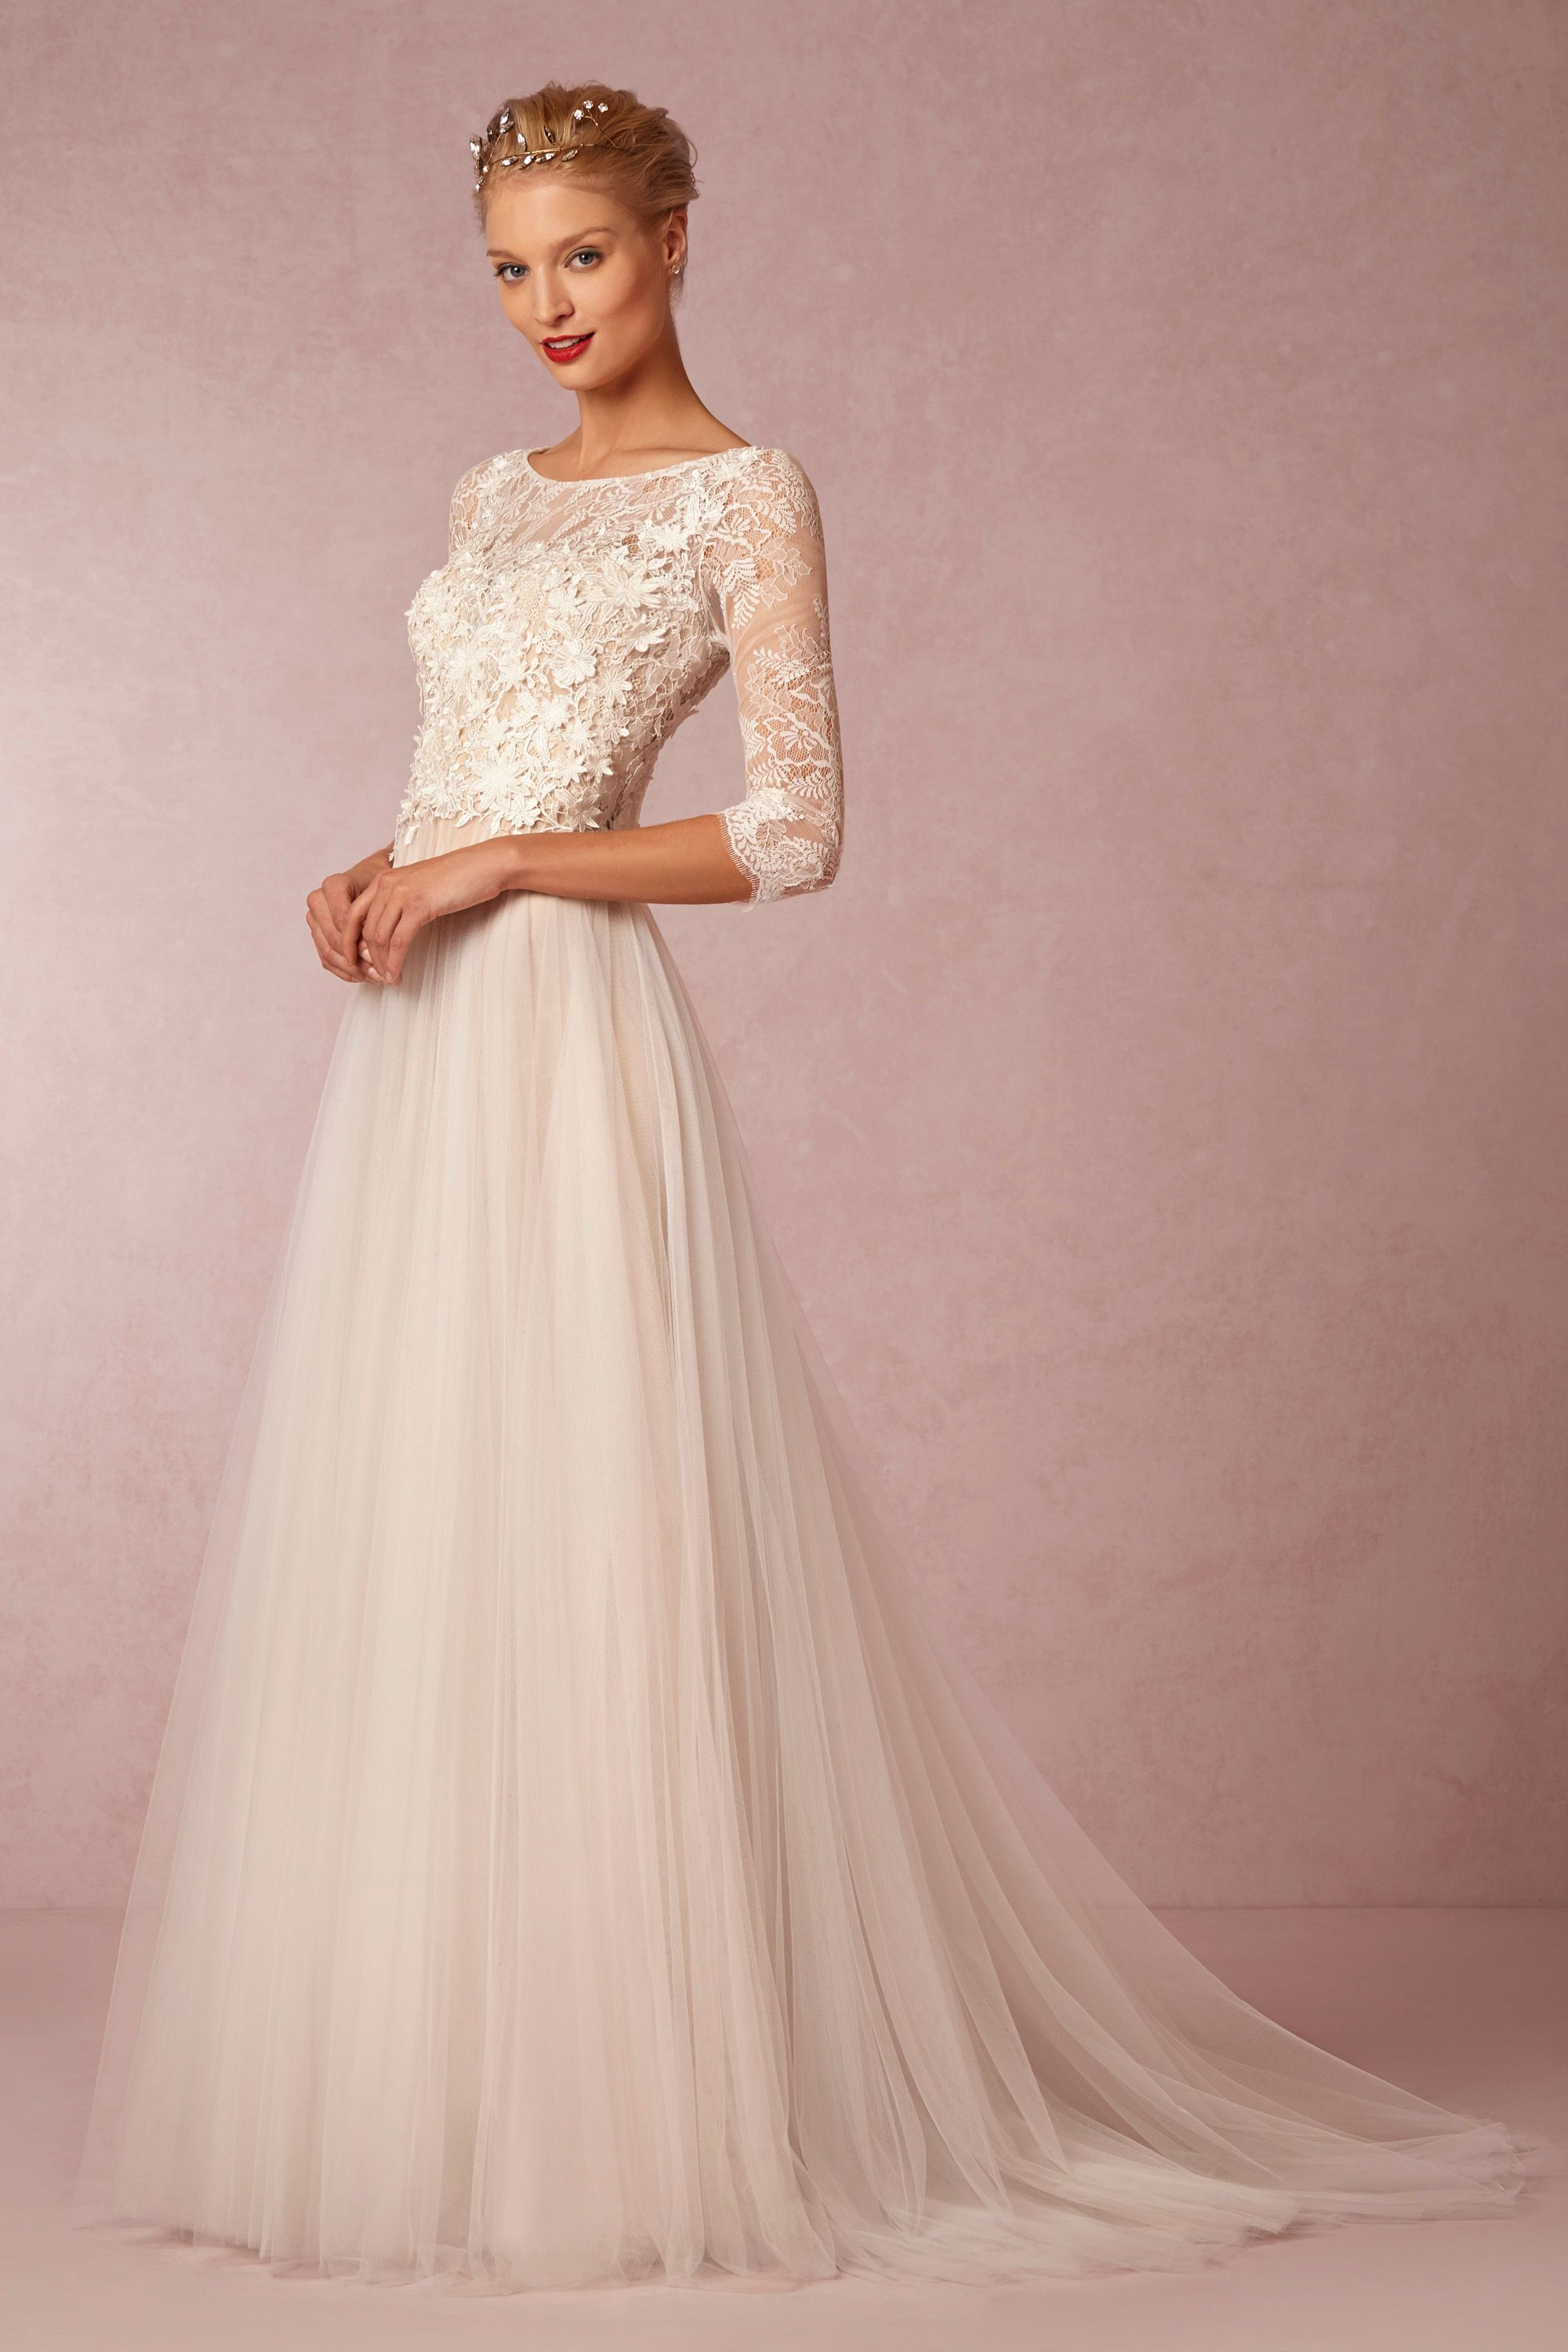 Amelie Gown from @BHLDN | vestidos de alta costura | Pinterest ...